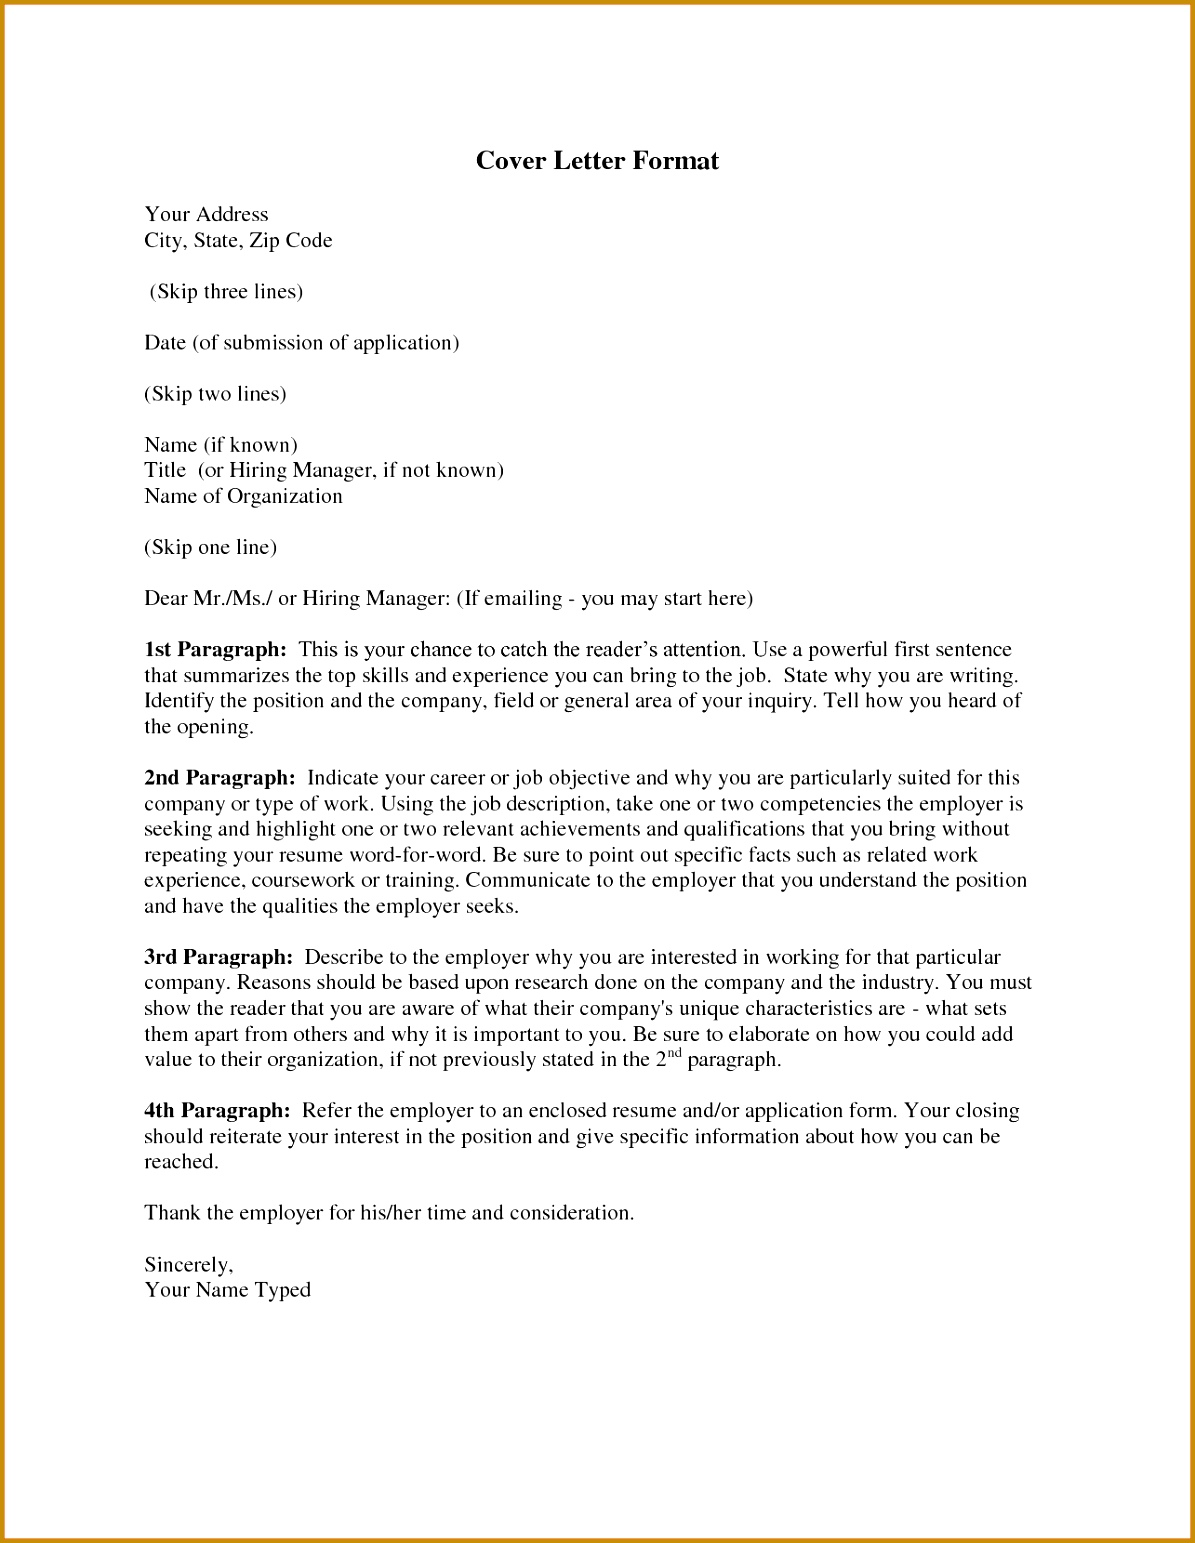 cover letter date format 15431195